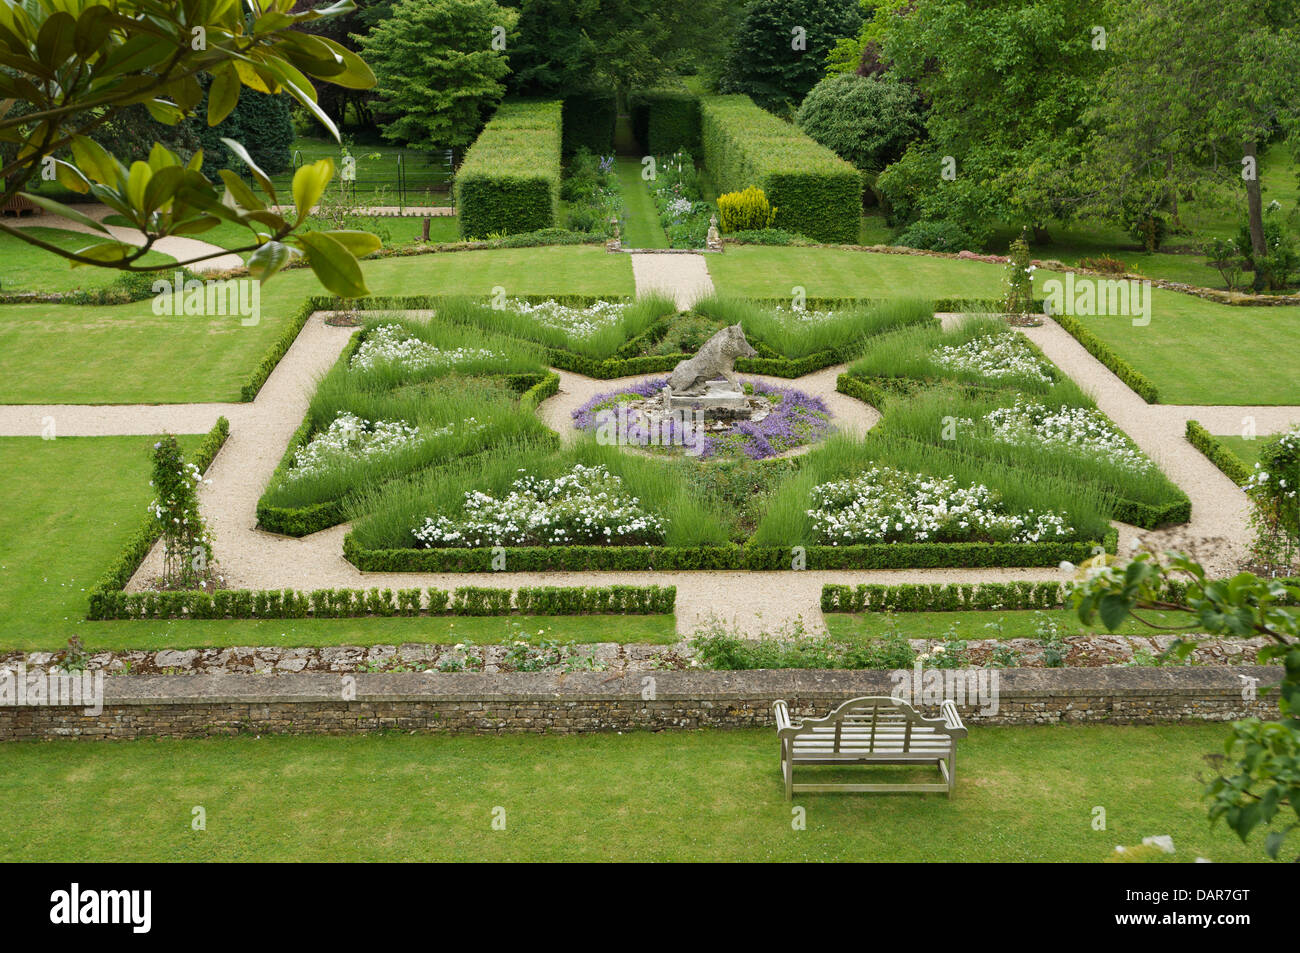 Box hedge borders and paths in garden with stone hog statue in Ampney Park, 17th century English country house - Stock Image